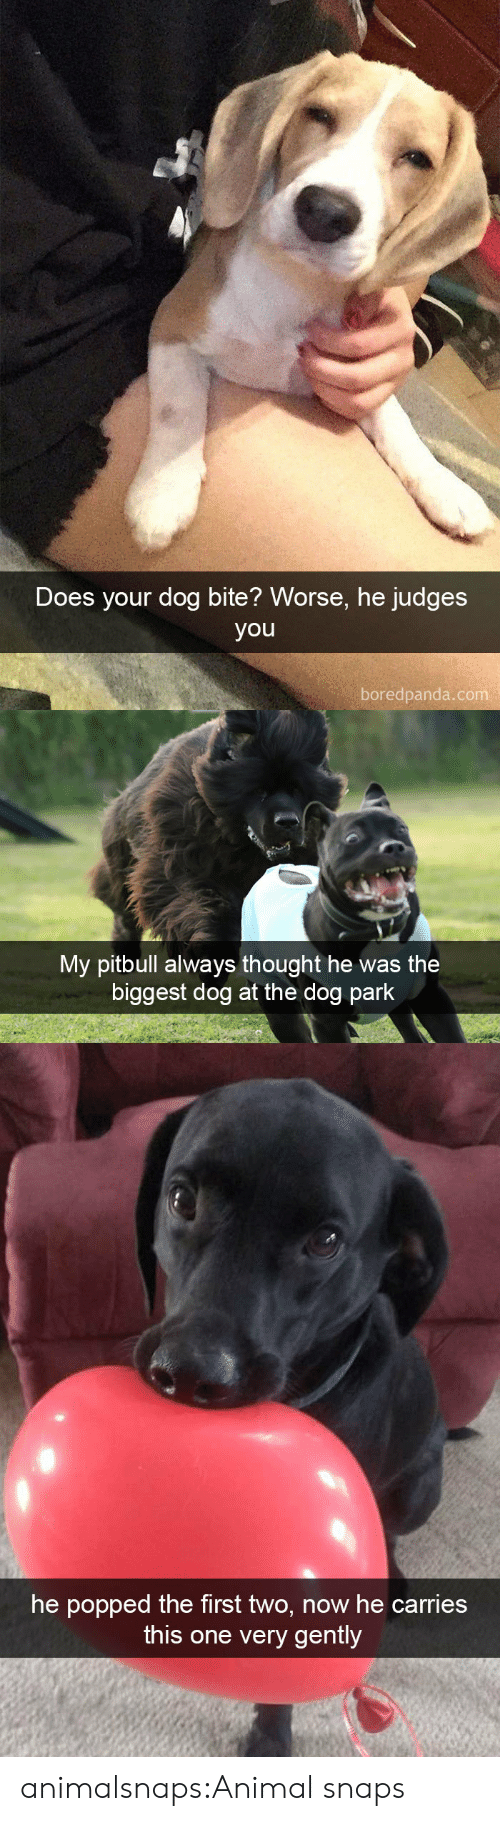 Pitbull: Does your dog bite? Worse, he judges  you  boredpanda.com   My pitbull always thought he was the  biggest dog at the dog park   he popped the first two, now he carries  this one very gently animalsnaps:Animal snaps